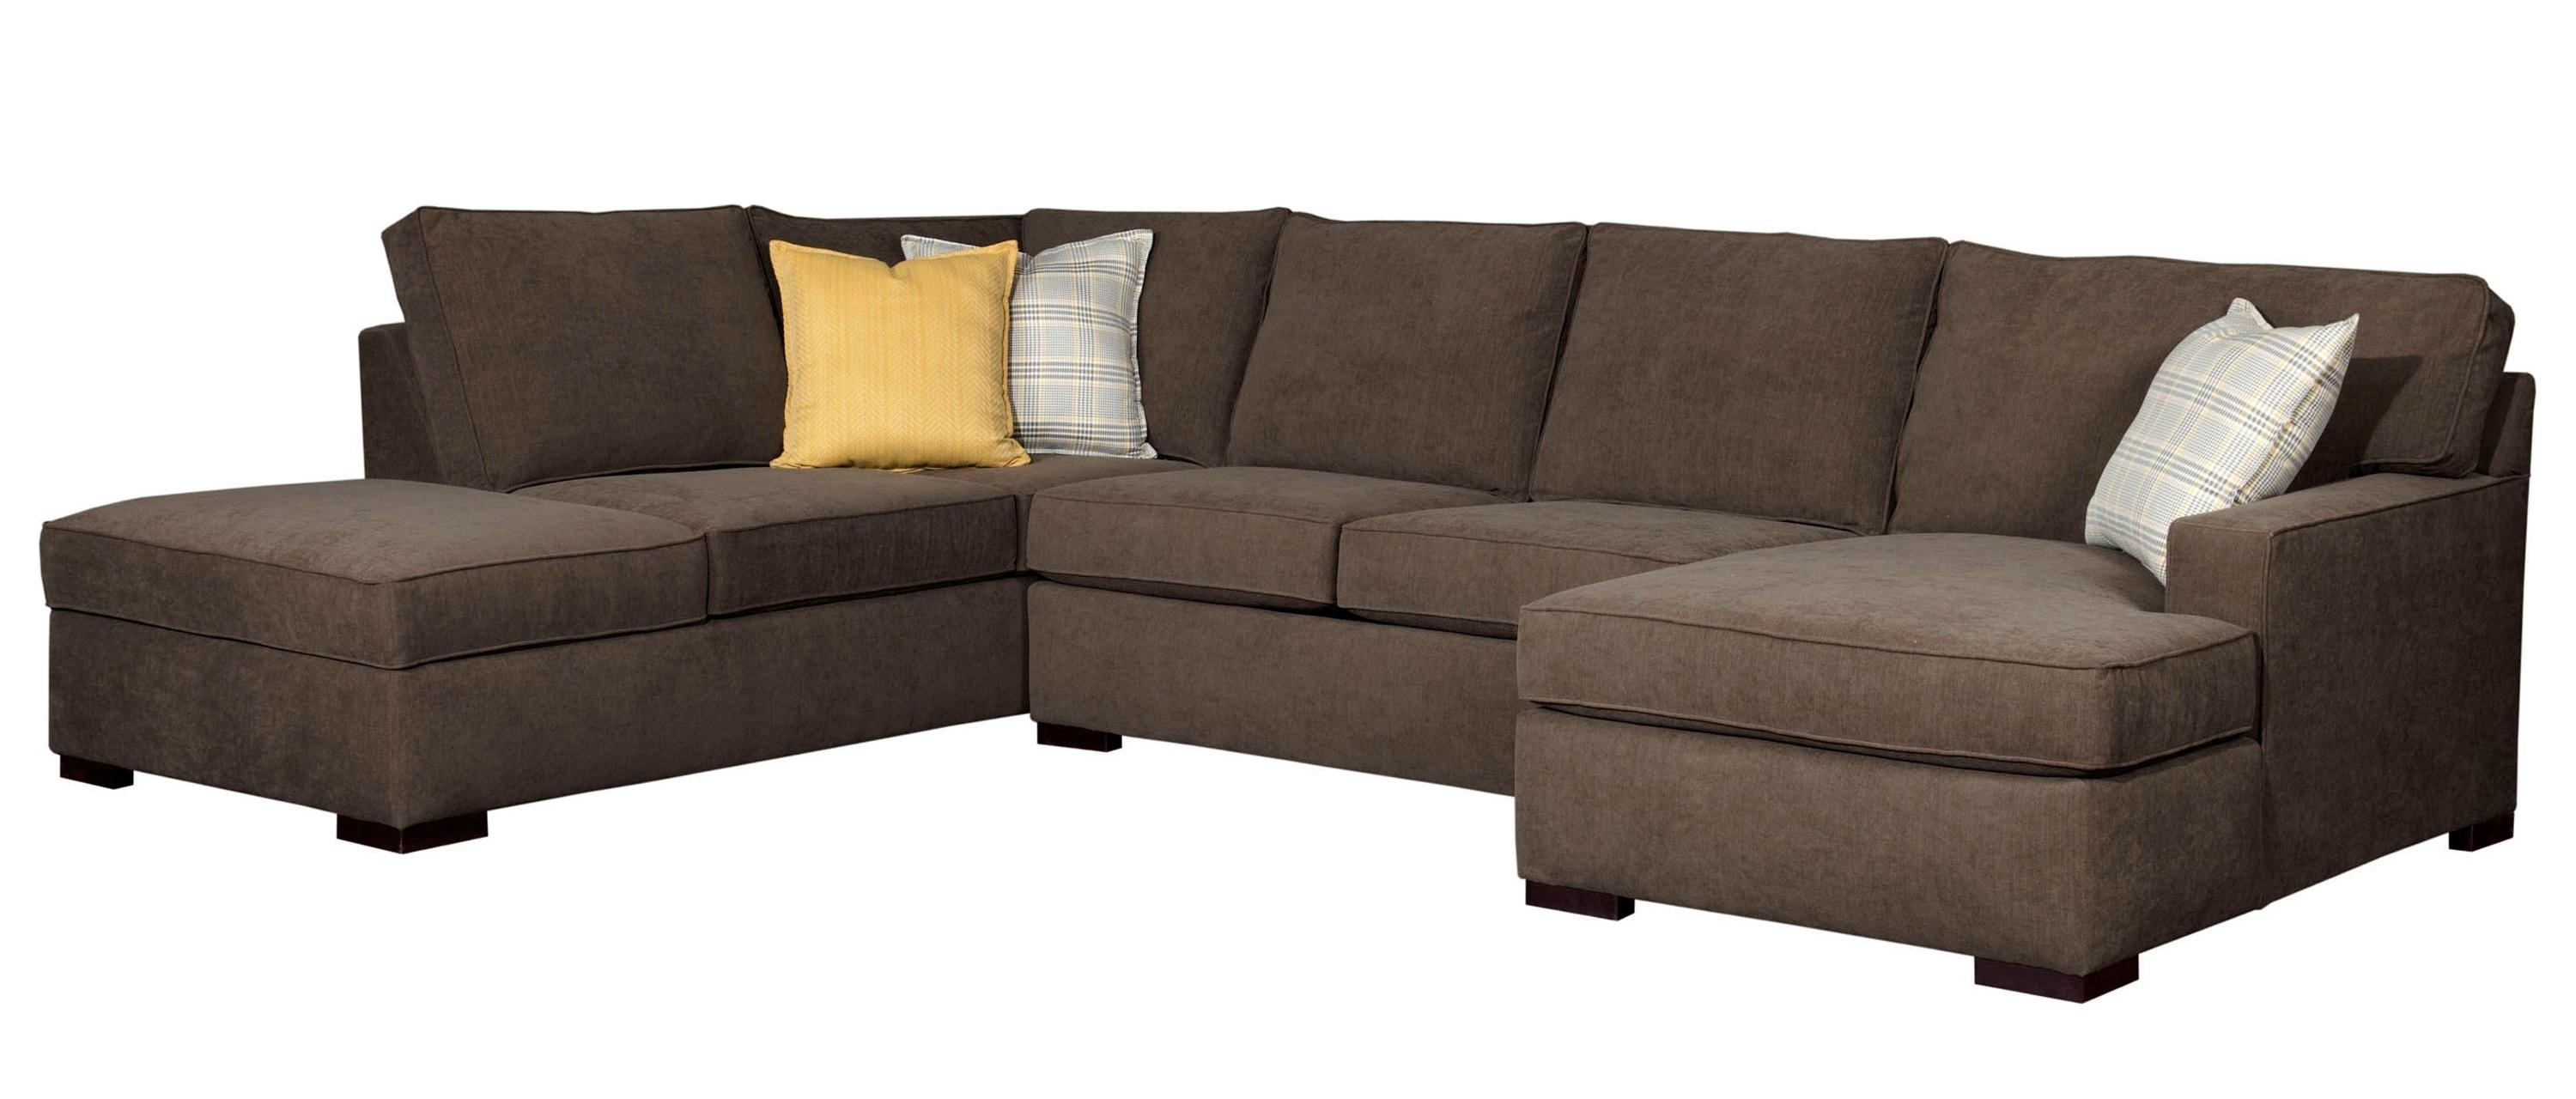 Broyhill Sectional Sofas | Freedom To For Sectional Sofas At Broyhill (View 10 of 15)